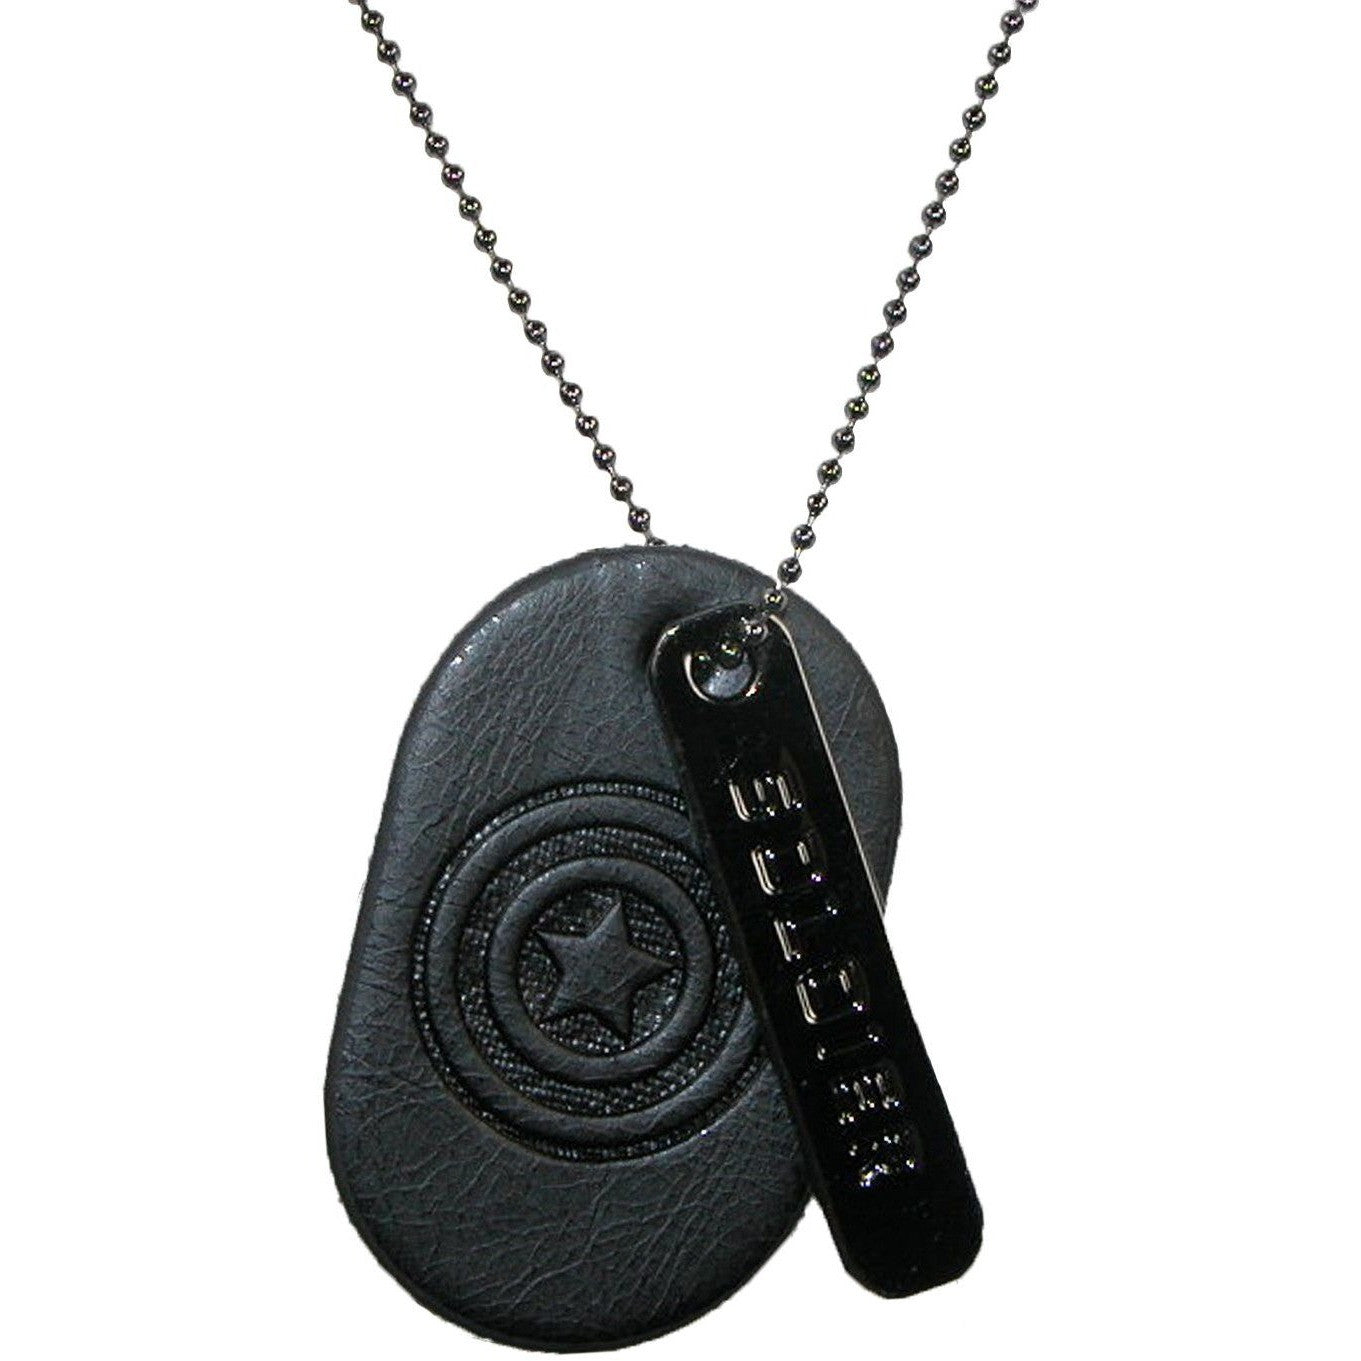 Captain America Dog Tag Necklace Uncanny!